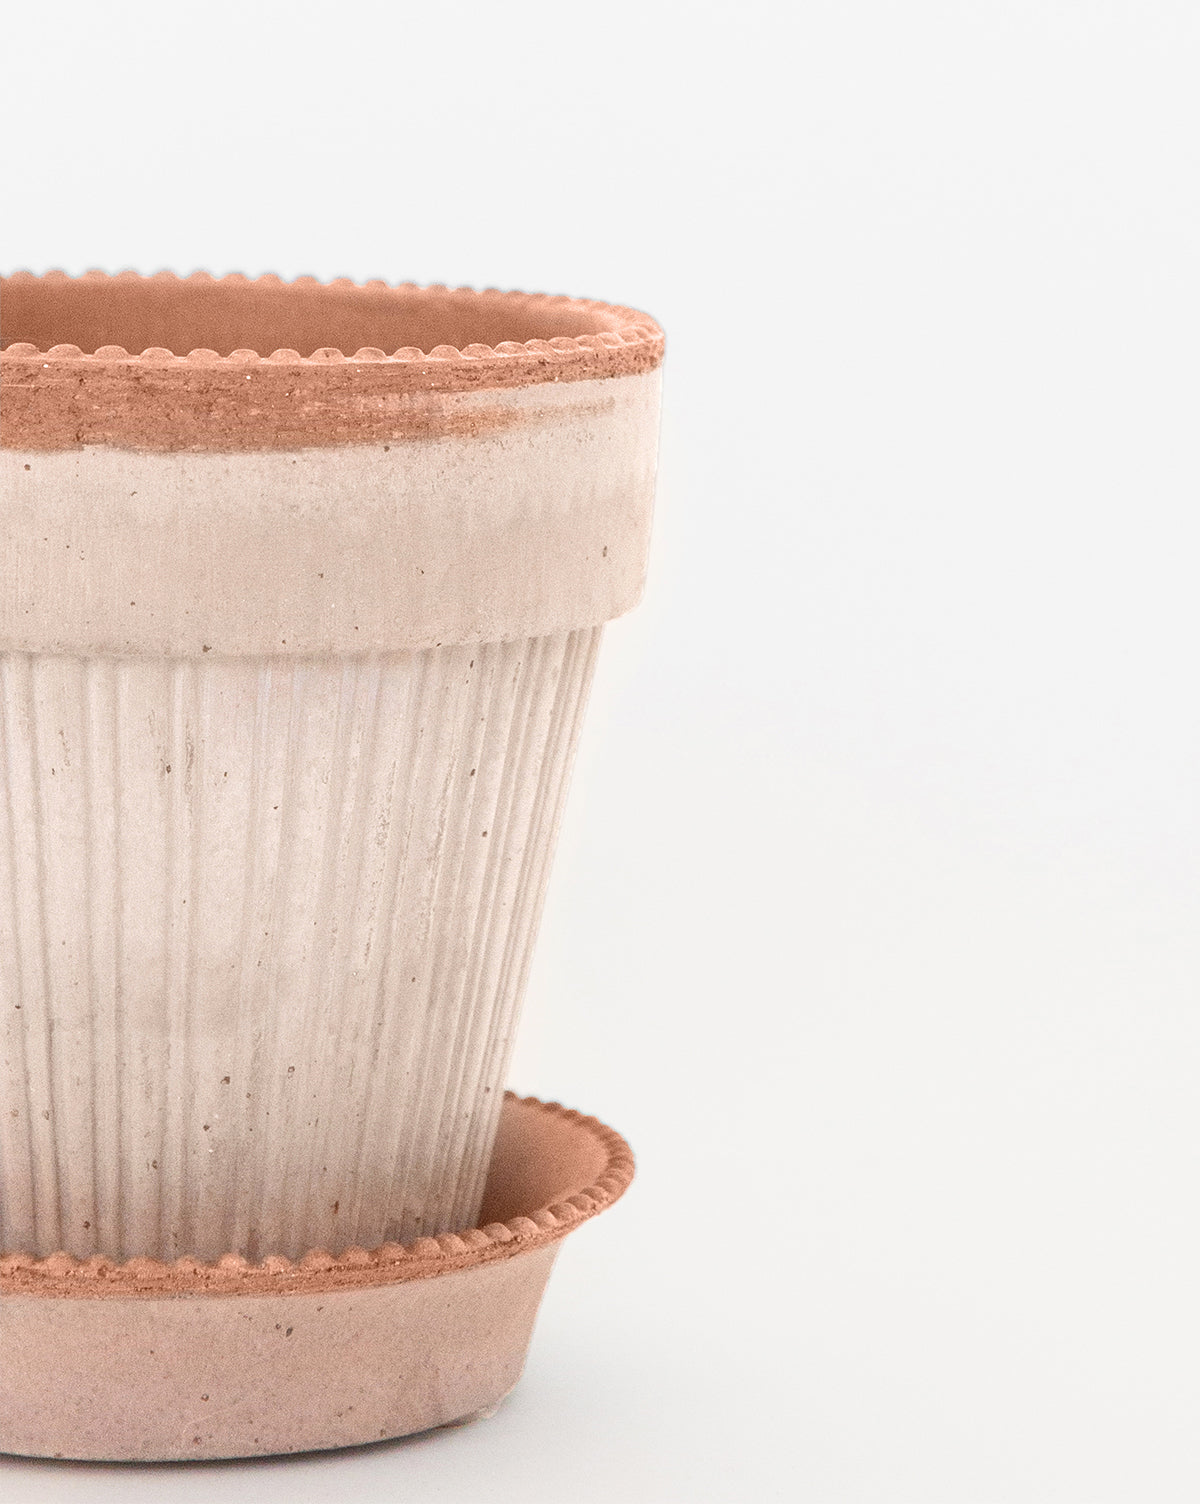 Dotted Edge Pot